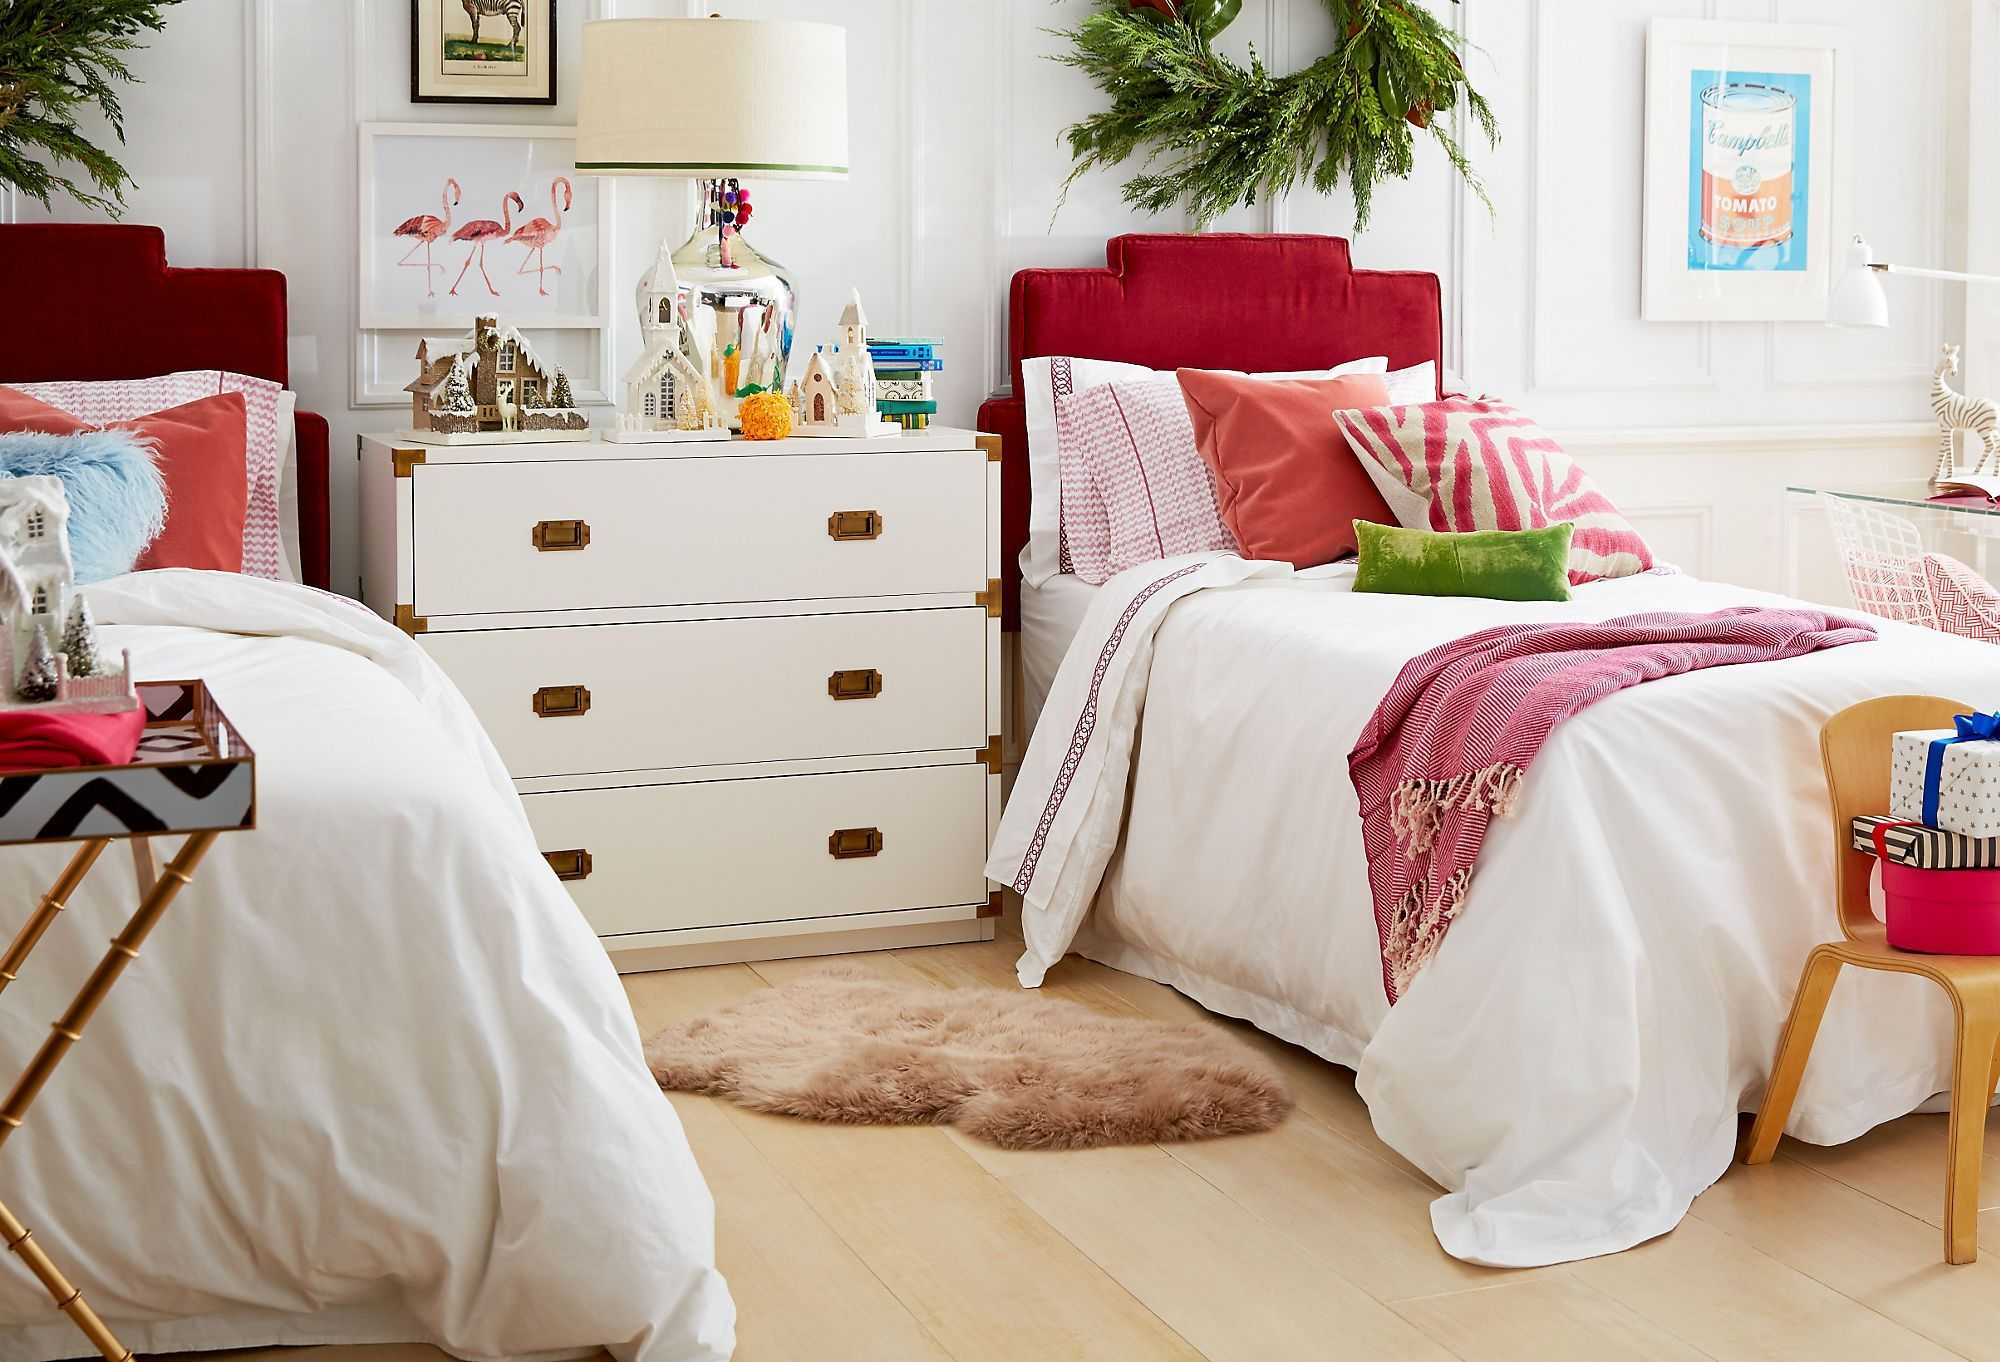 Oh What Fun A Kid s Room for the Holidays & Beyond